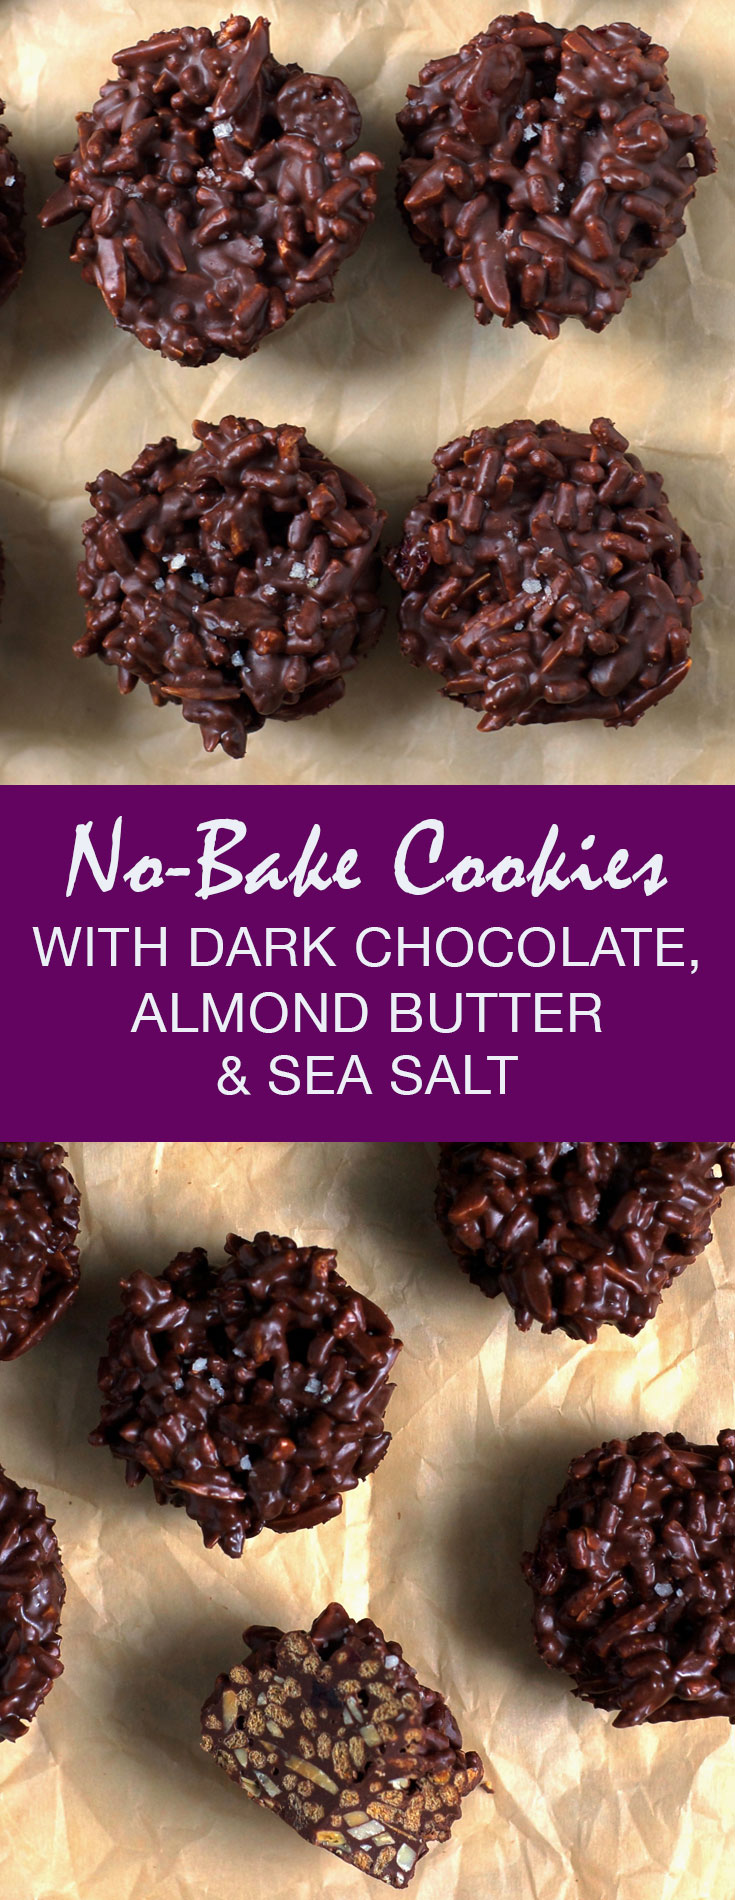 No-Bake Cookies with Dark Chocolate, Almond Butter & Sea Salt